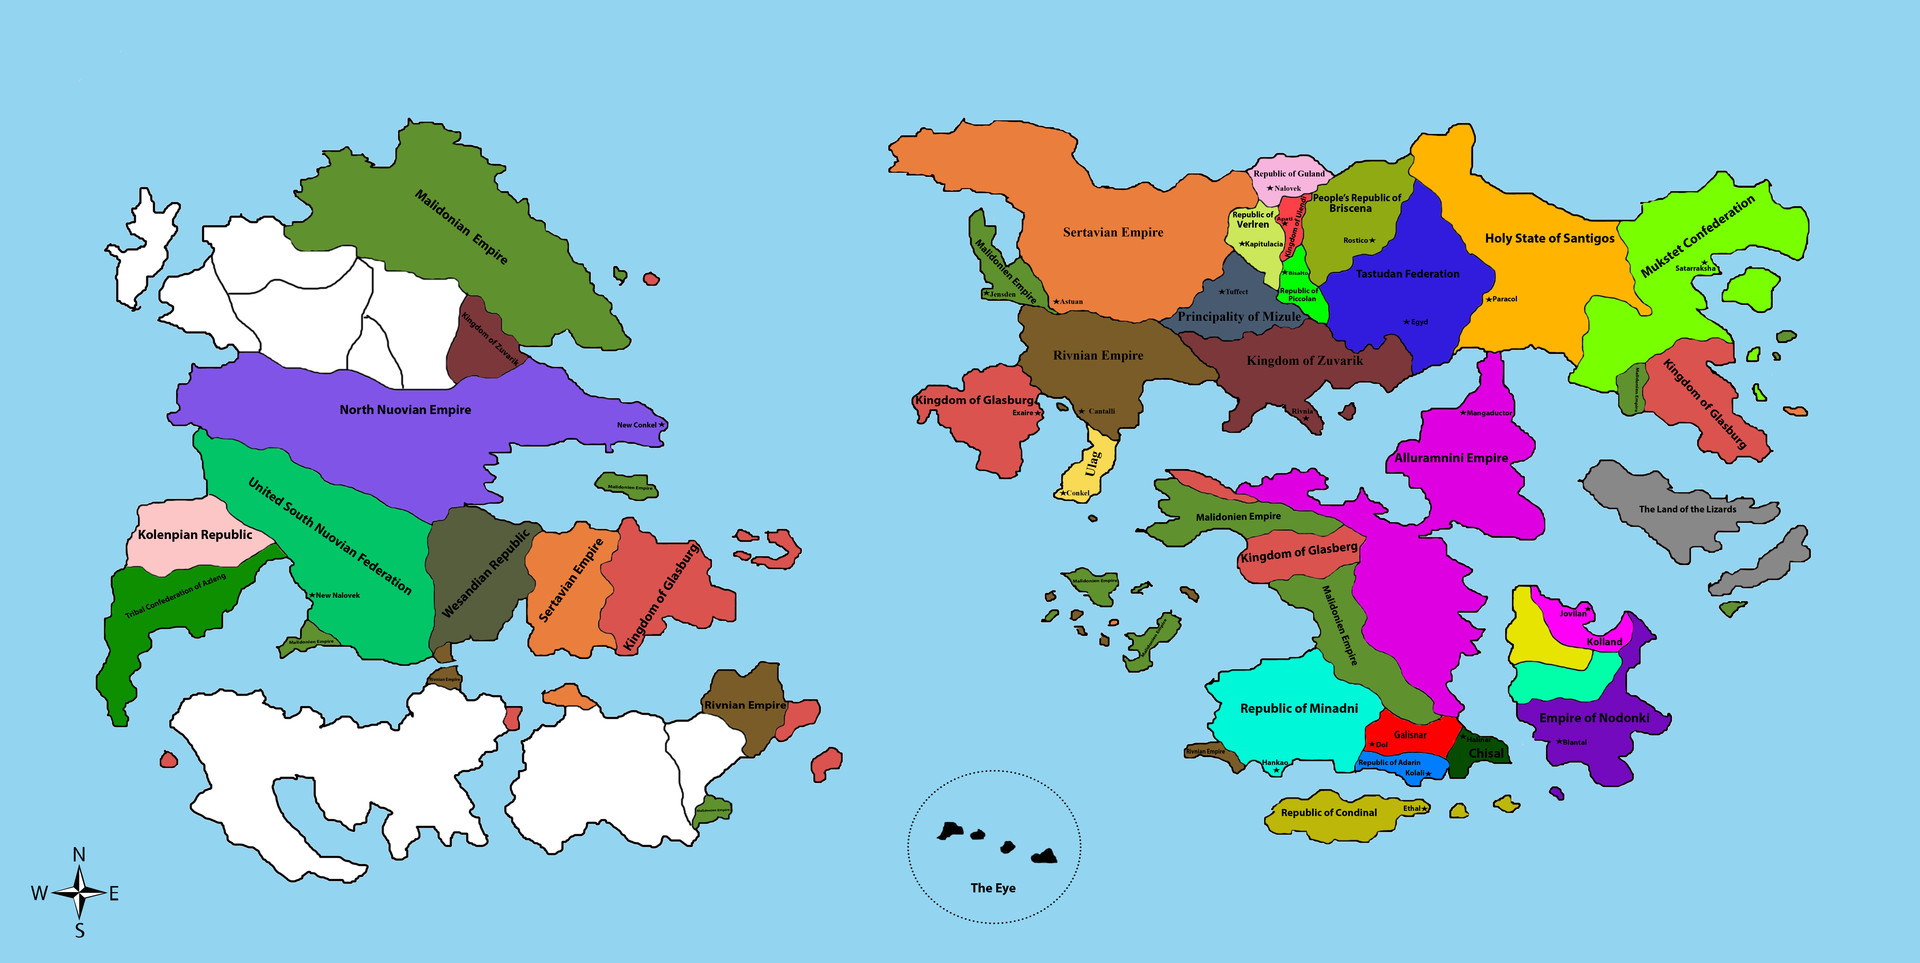 map making - Quick-and-simple point-and-click cartographic